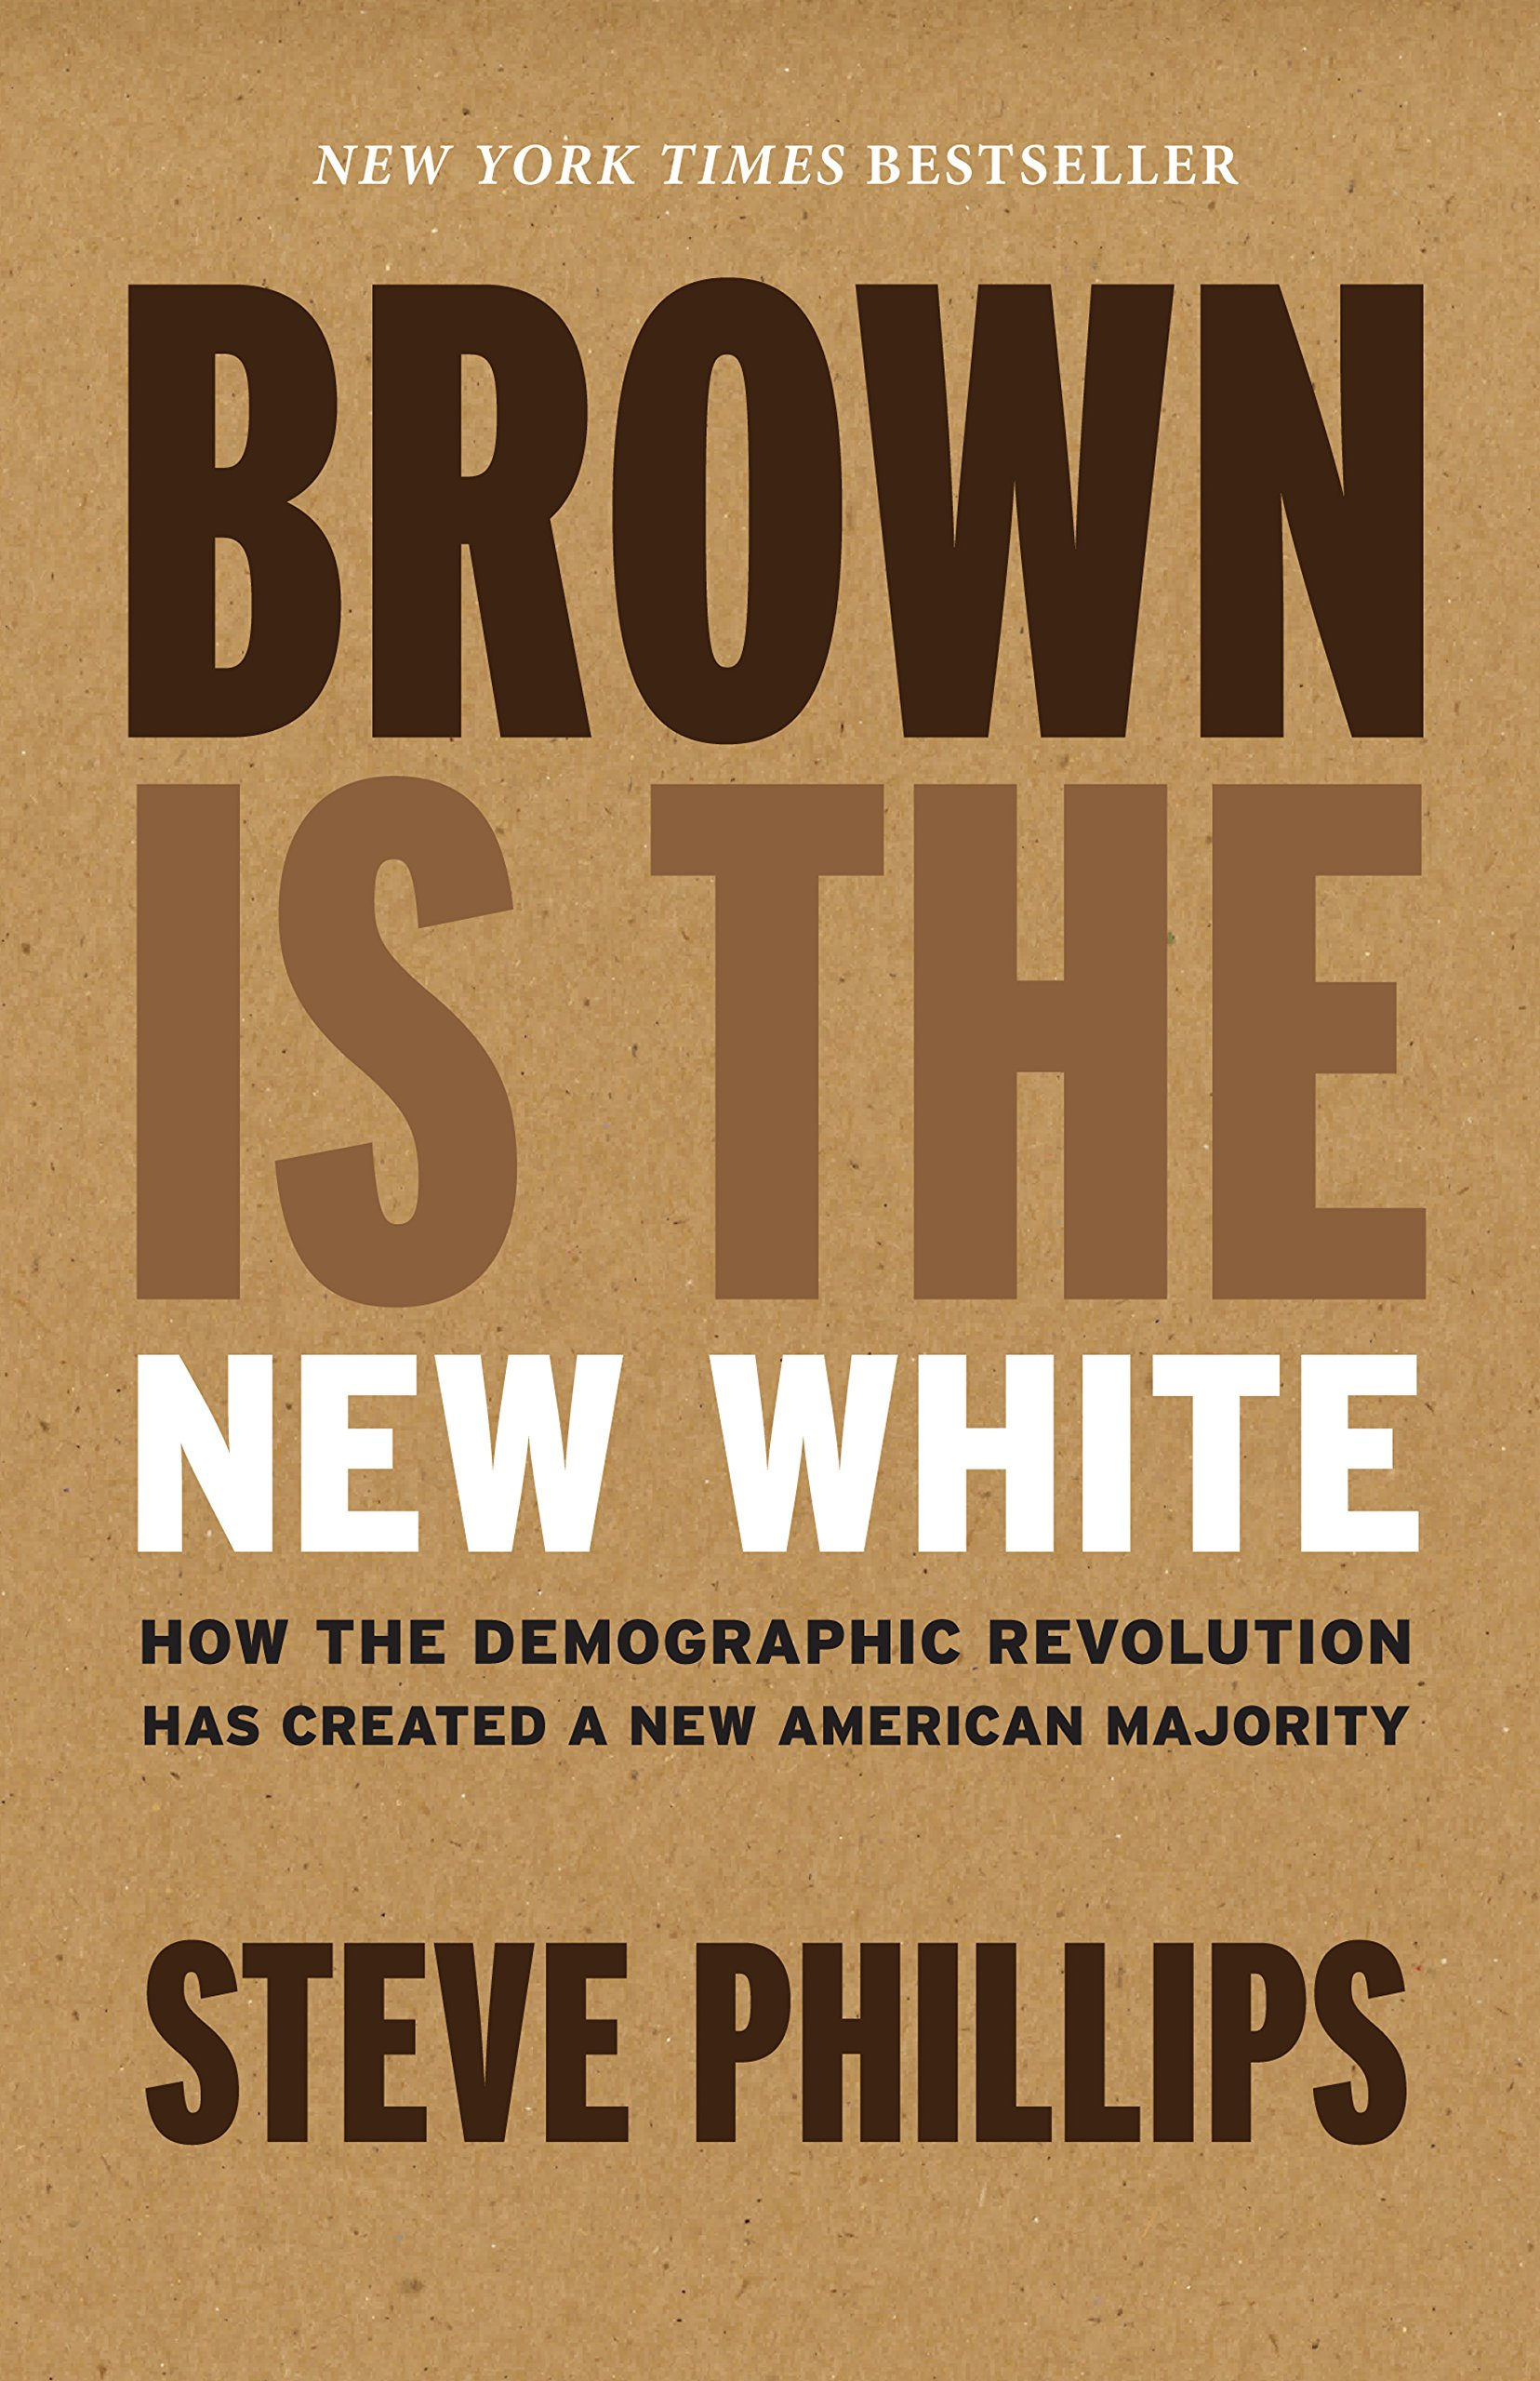 Image OfBrown Is The New White: How The Demographic Revolution Has Created A New American Majority (English Edition)